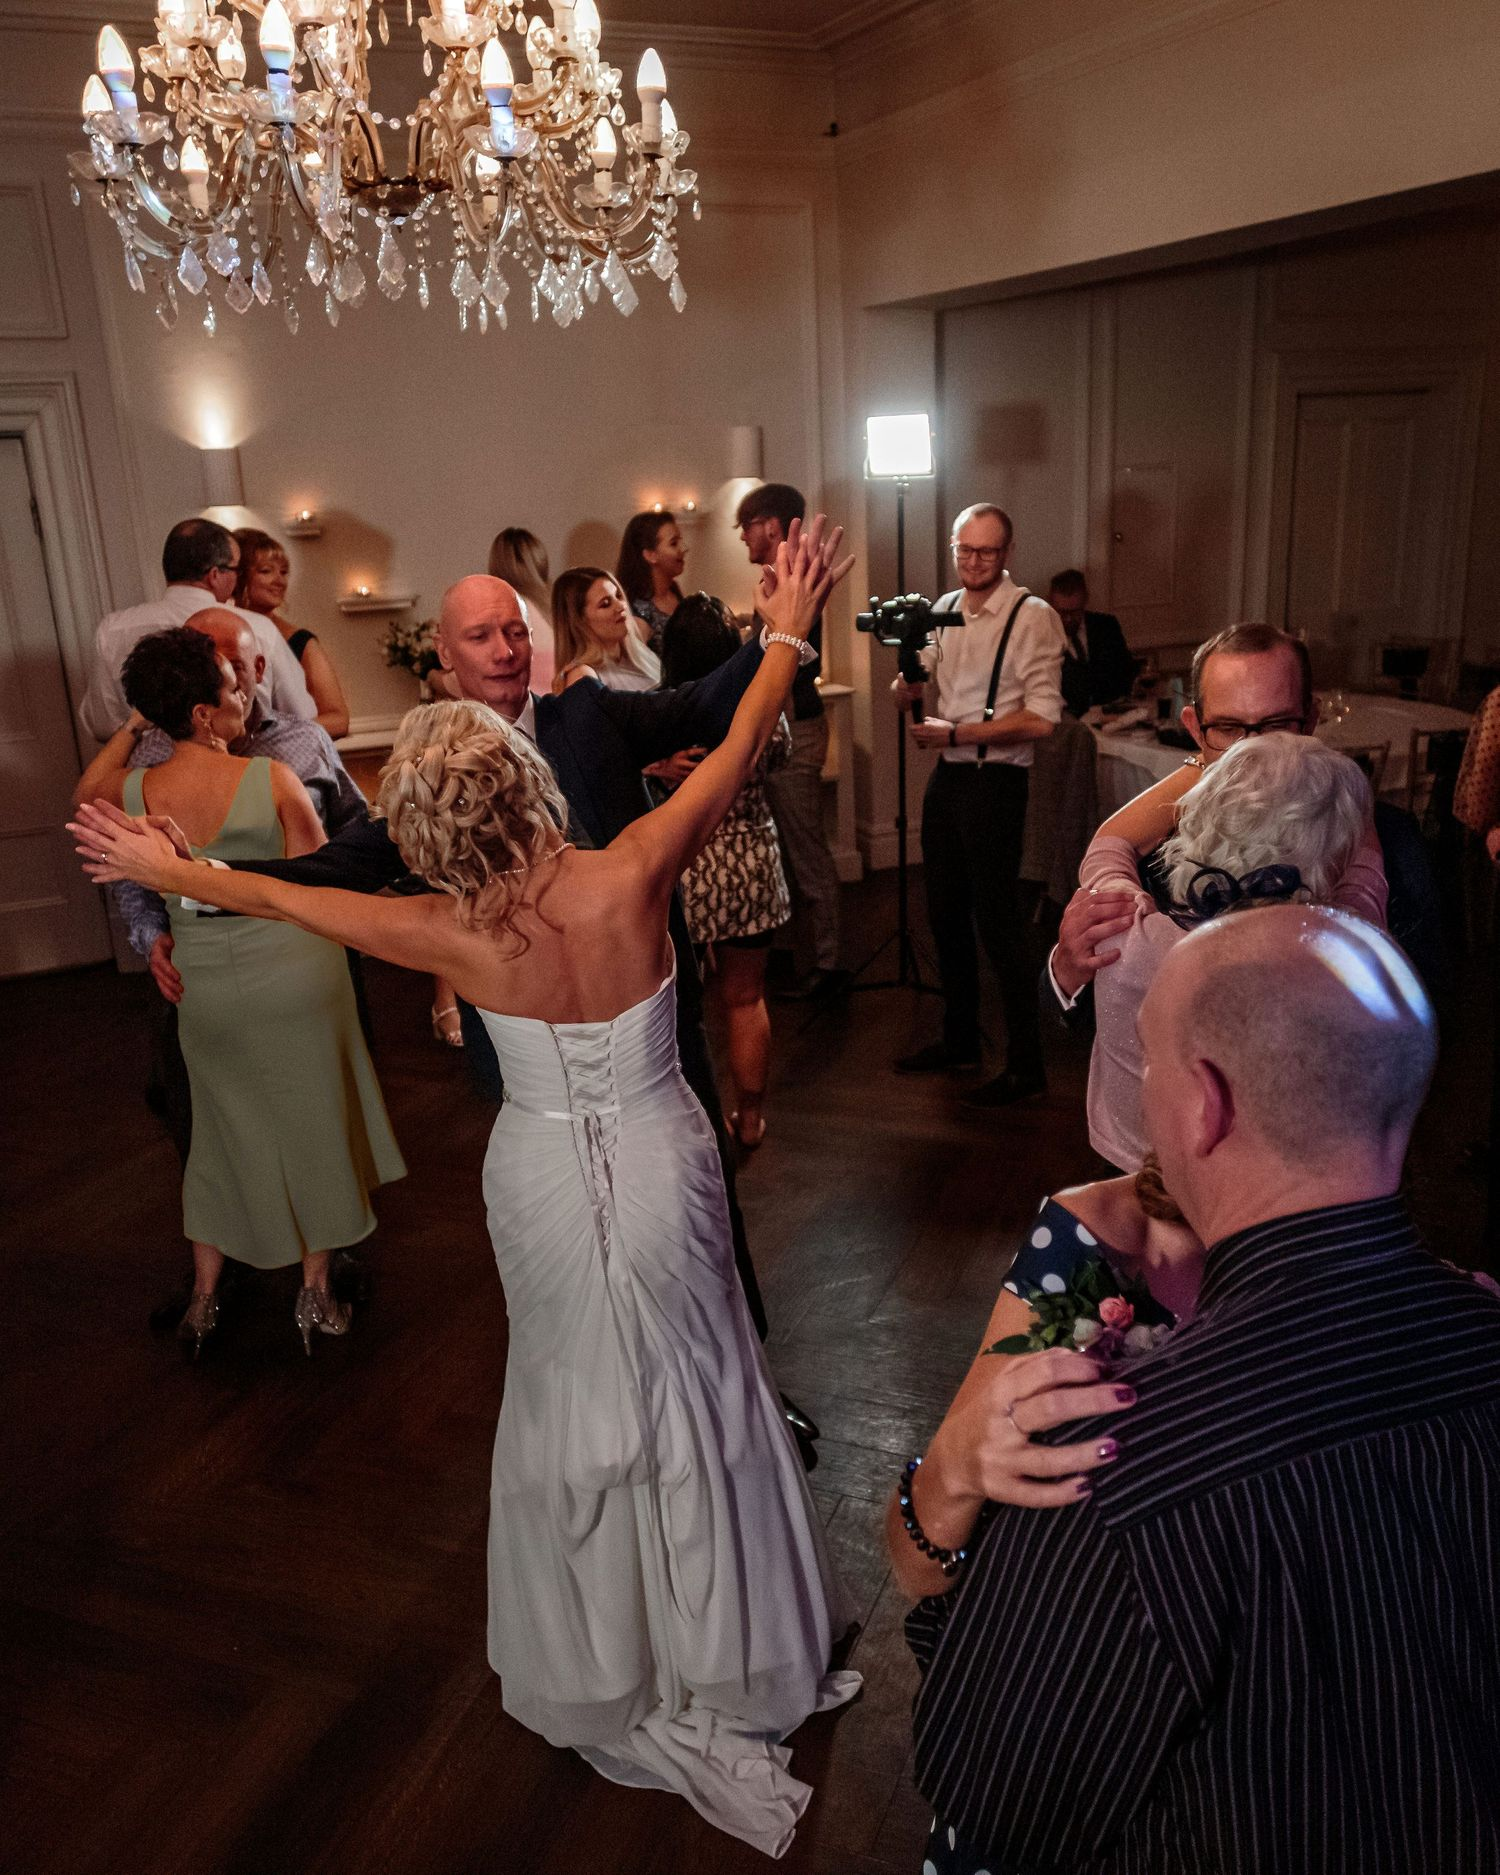 bride and groom with their arms in the air as they newlyweds are joined on the dance floor by their wedding guests